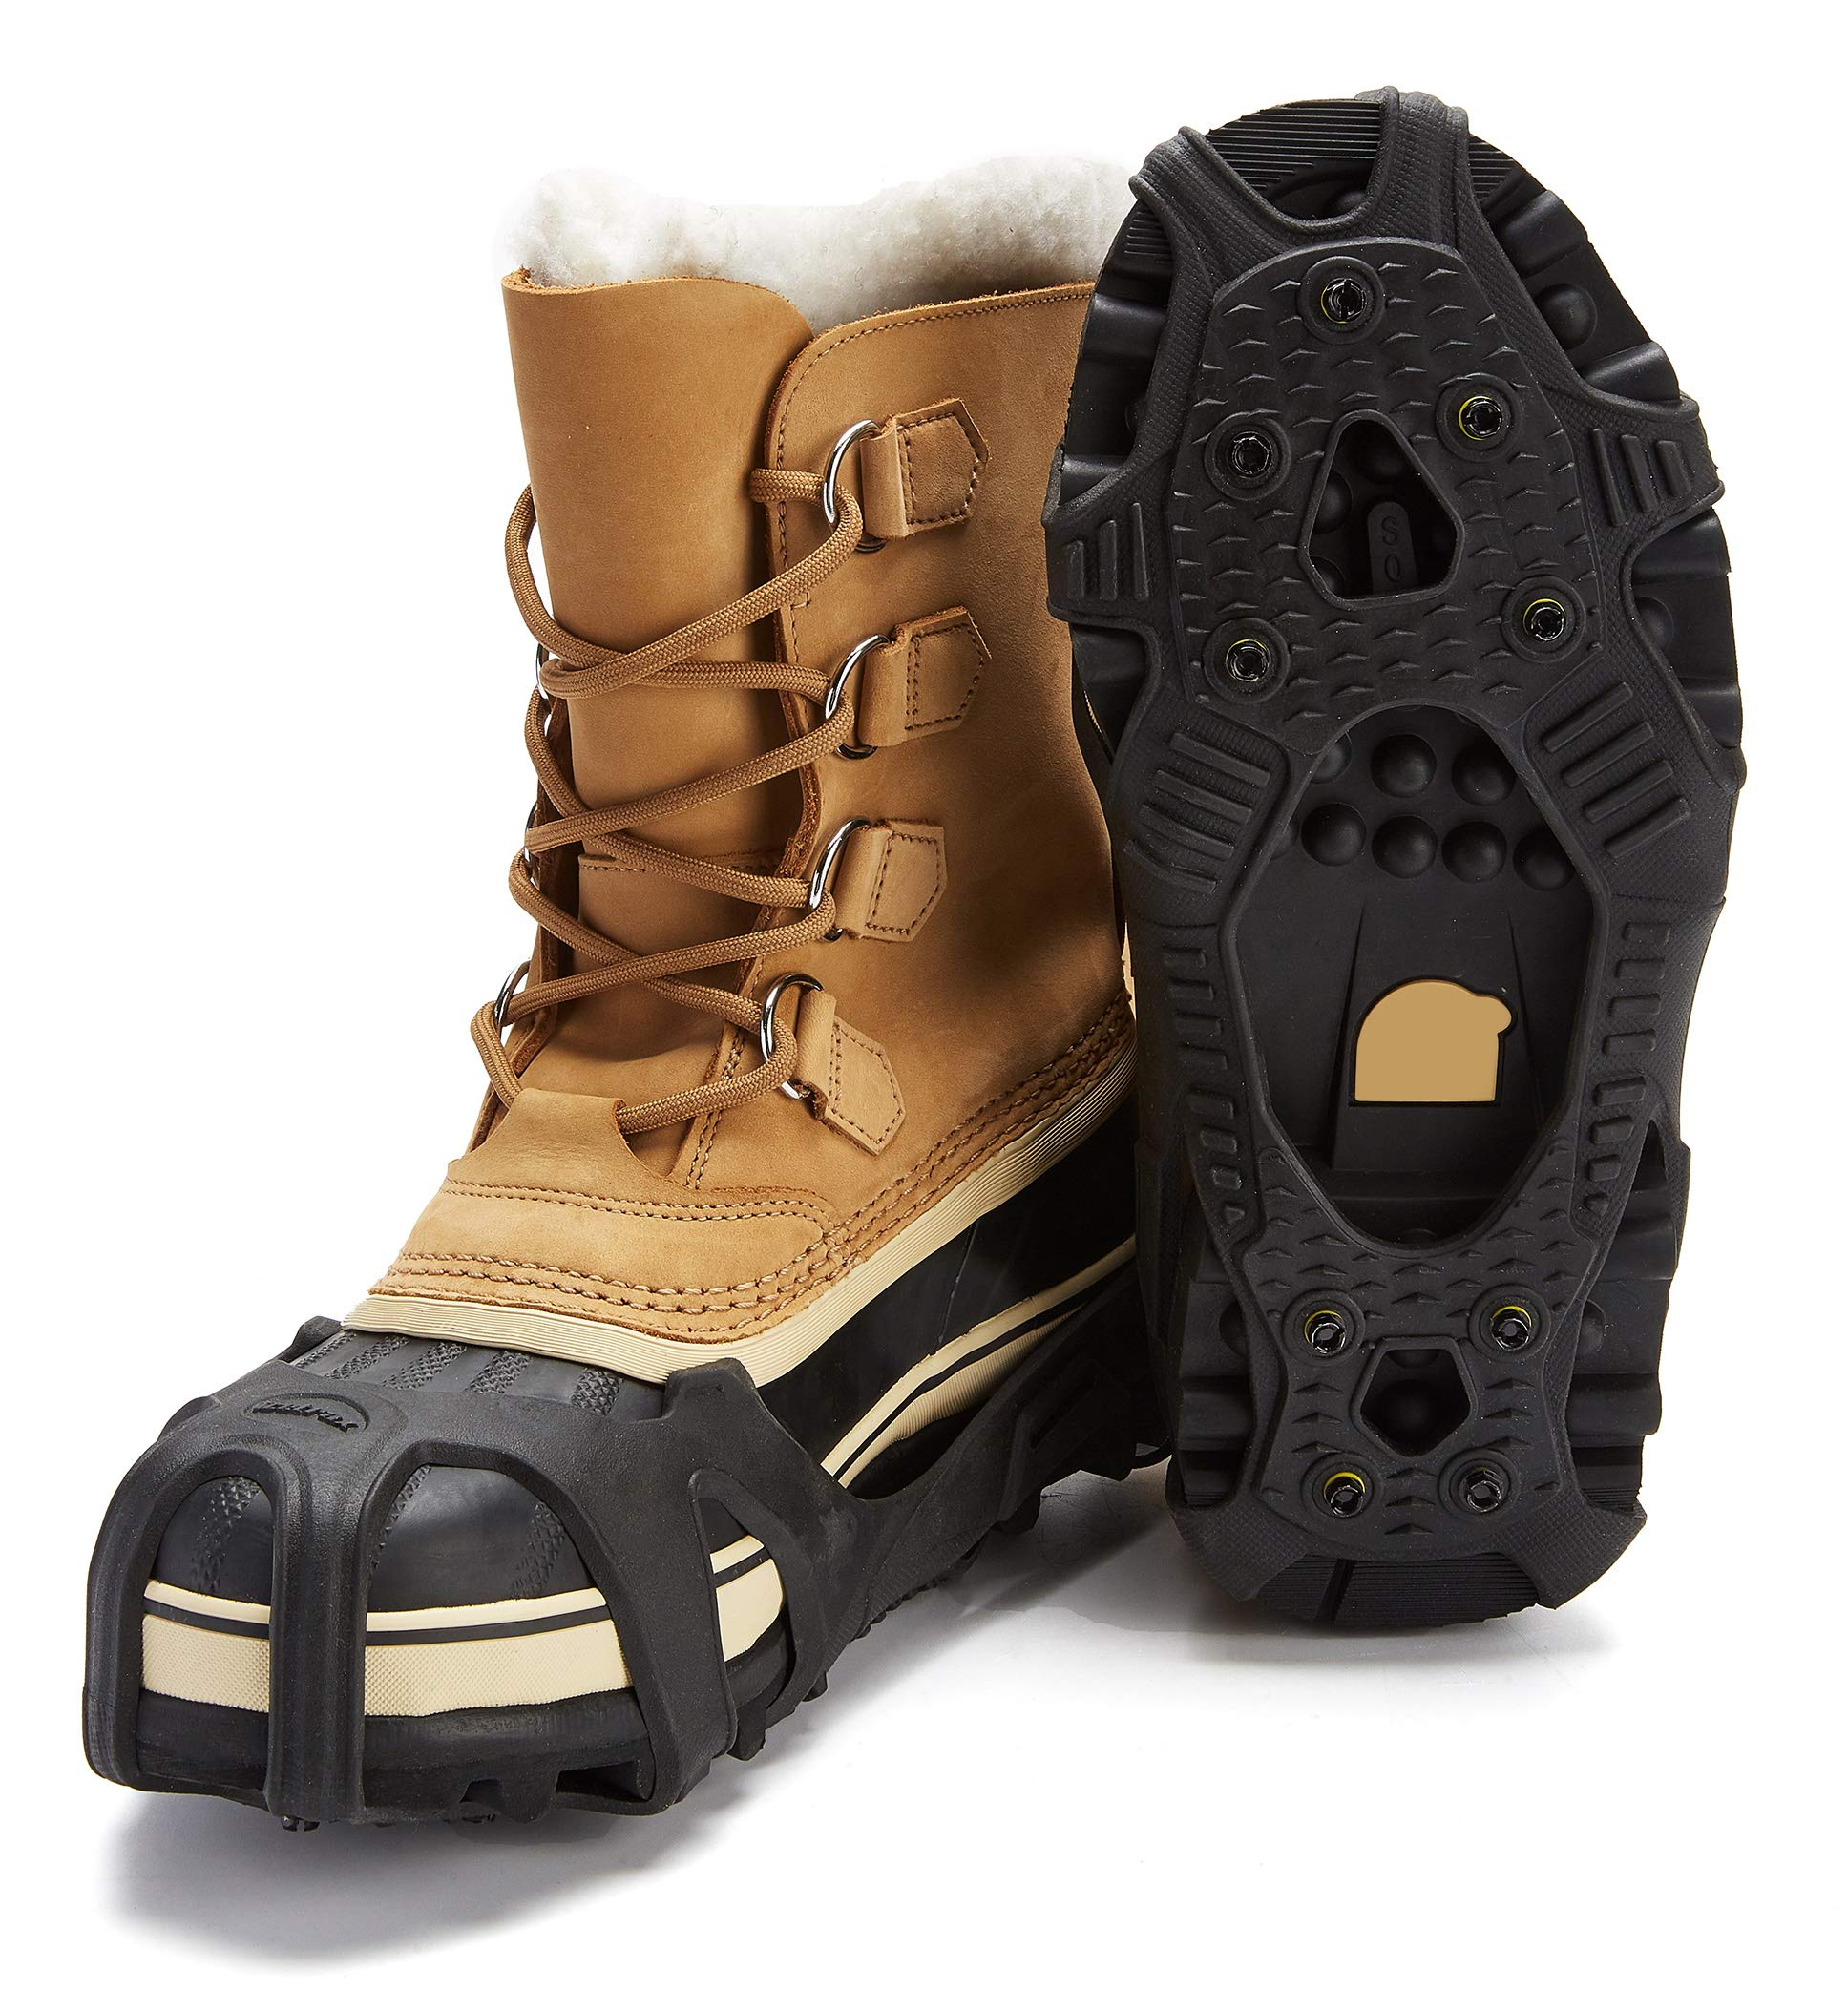 ICETRAX Pro Winter Ice Grips for Shoes